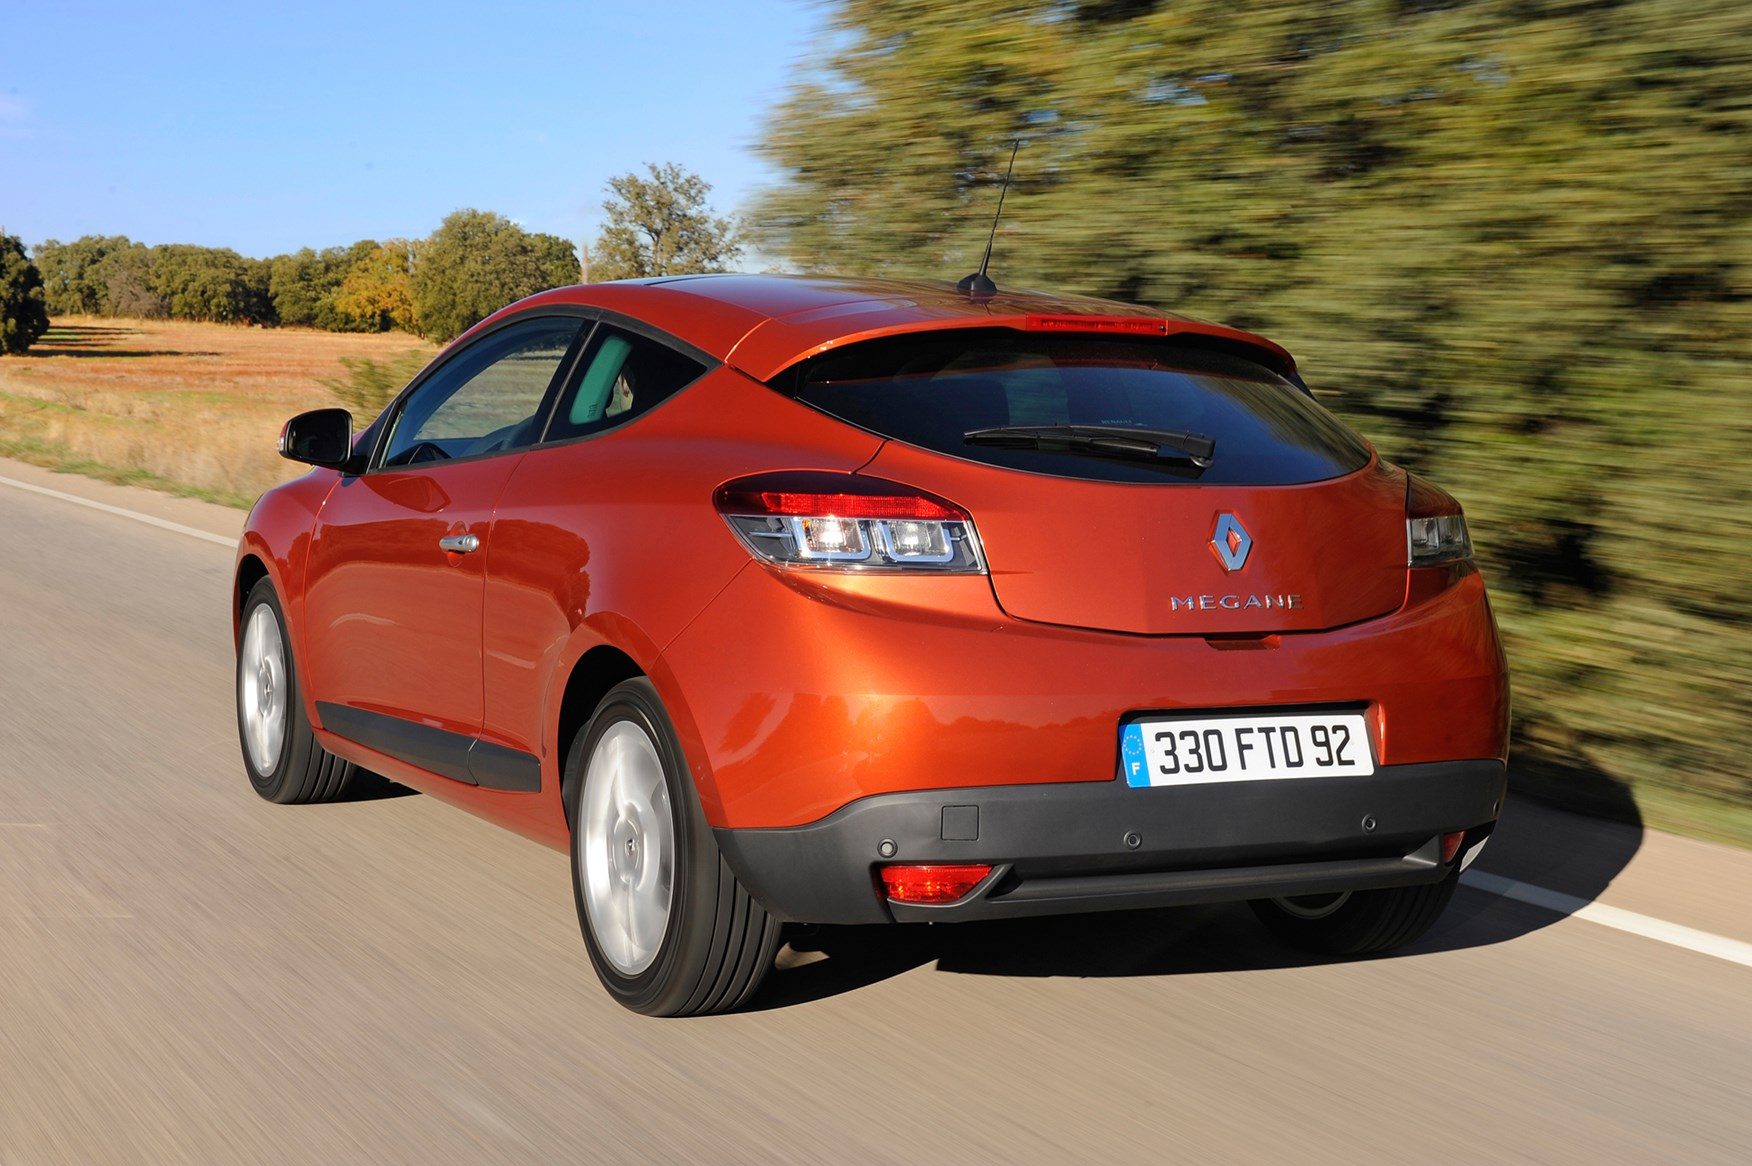 Used Renault Megane Coupe (2009 - 2016) Practicality | Parkers